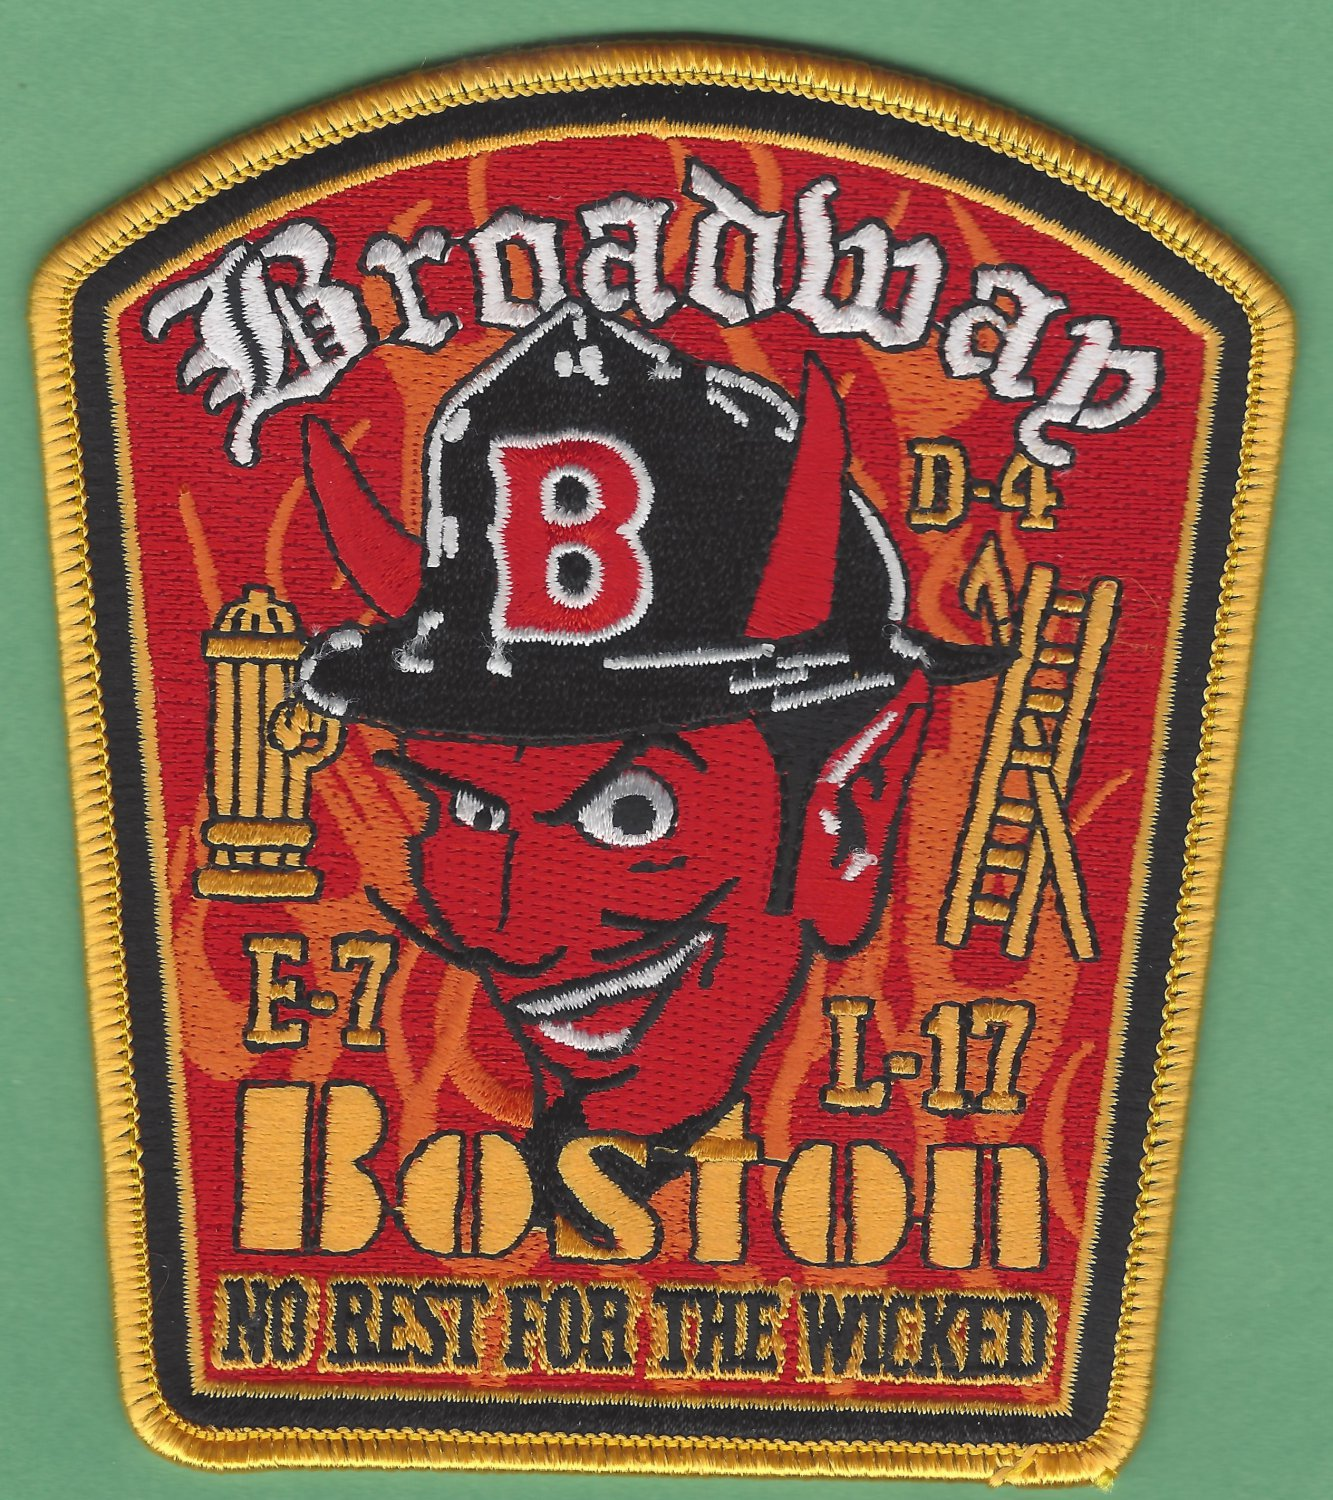 Boston Fire Department Engine 7 Ladder 17 Company Patch